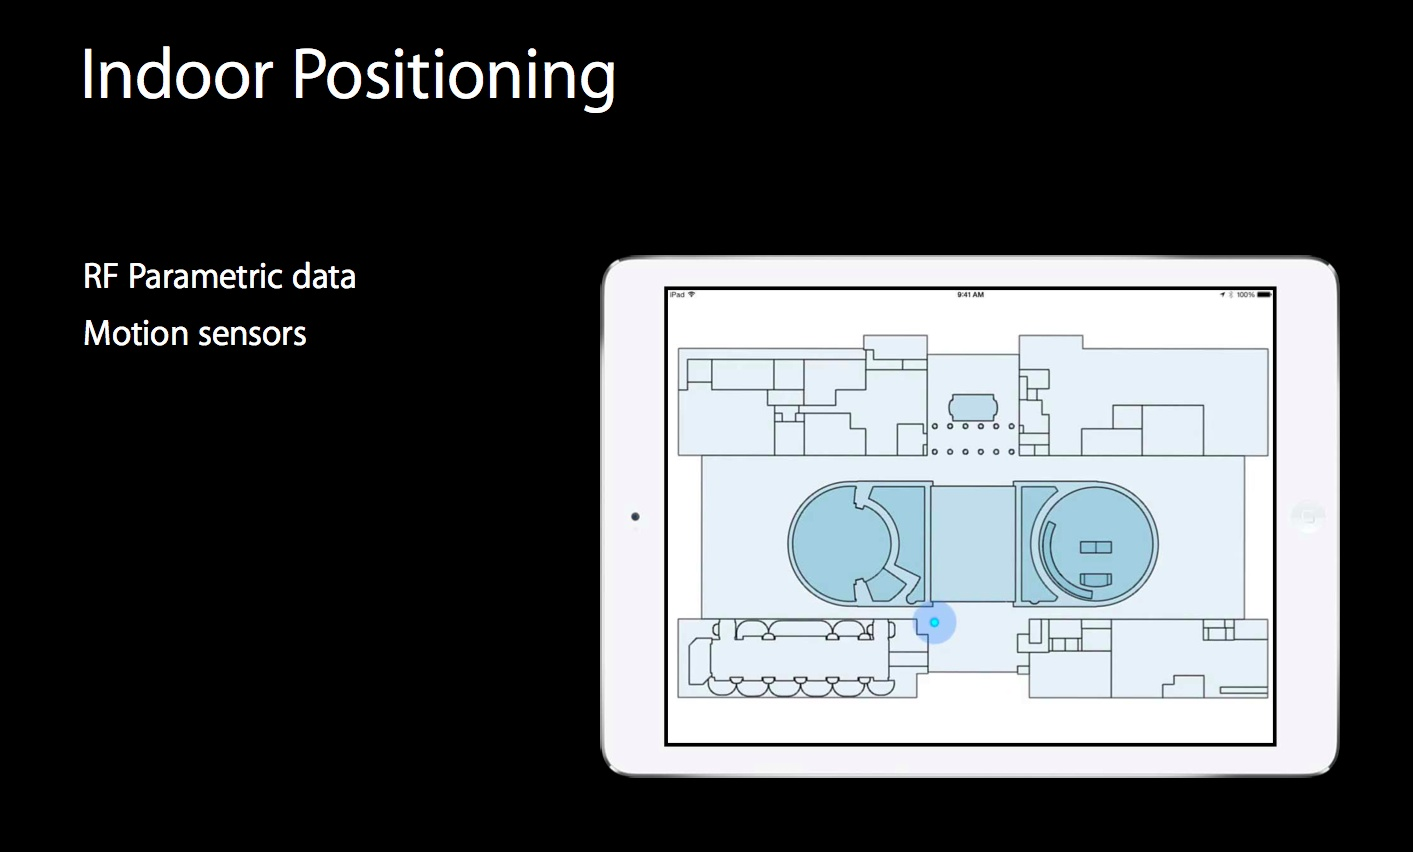 IOS 8 (Indoor Positioning 001)